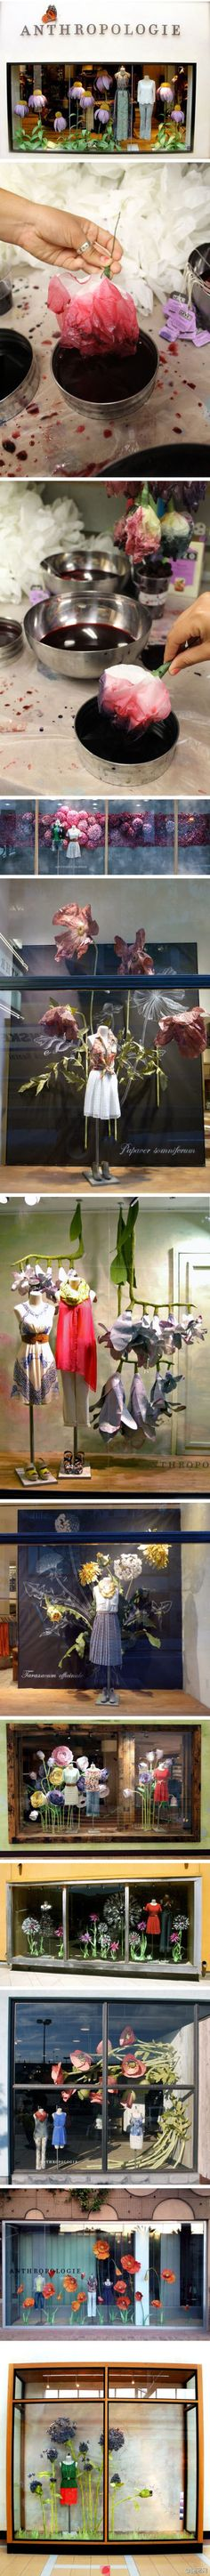 Enjoy the slightly quirky; the somewhat unexpected ( scale, colour, juxtaposition) Anthropologie windows.